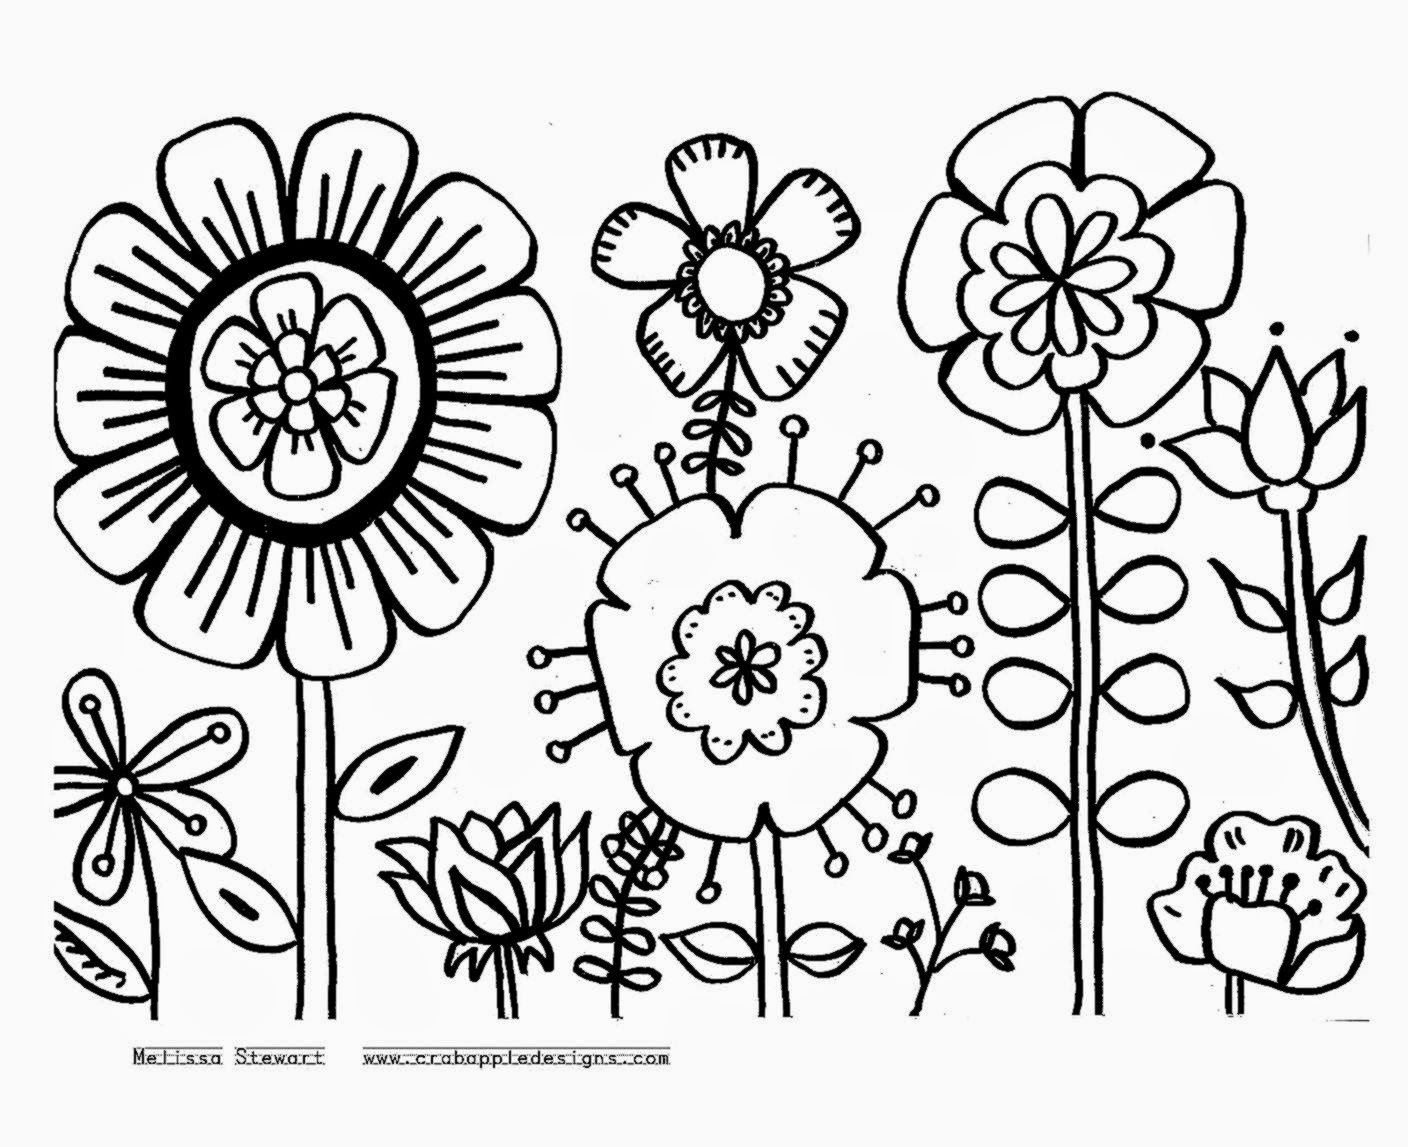 colouring flowers pictures lilac flower coloring pages download and print lilac flowers colouring pictures